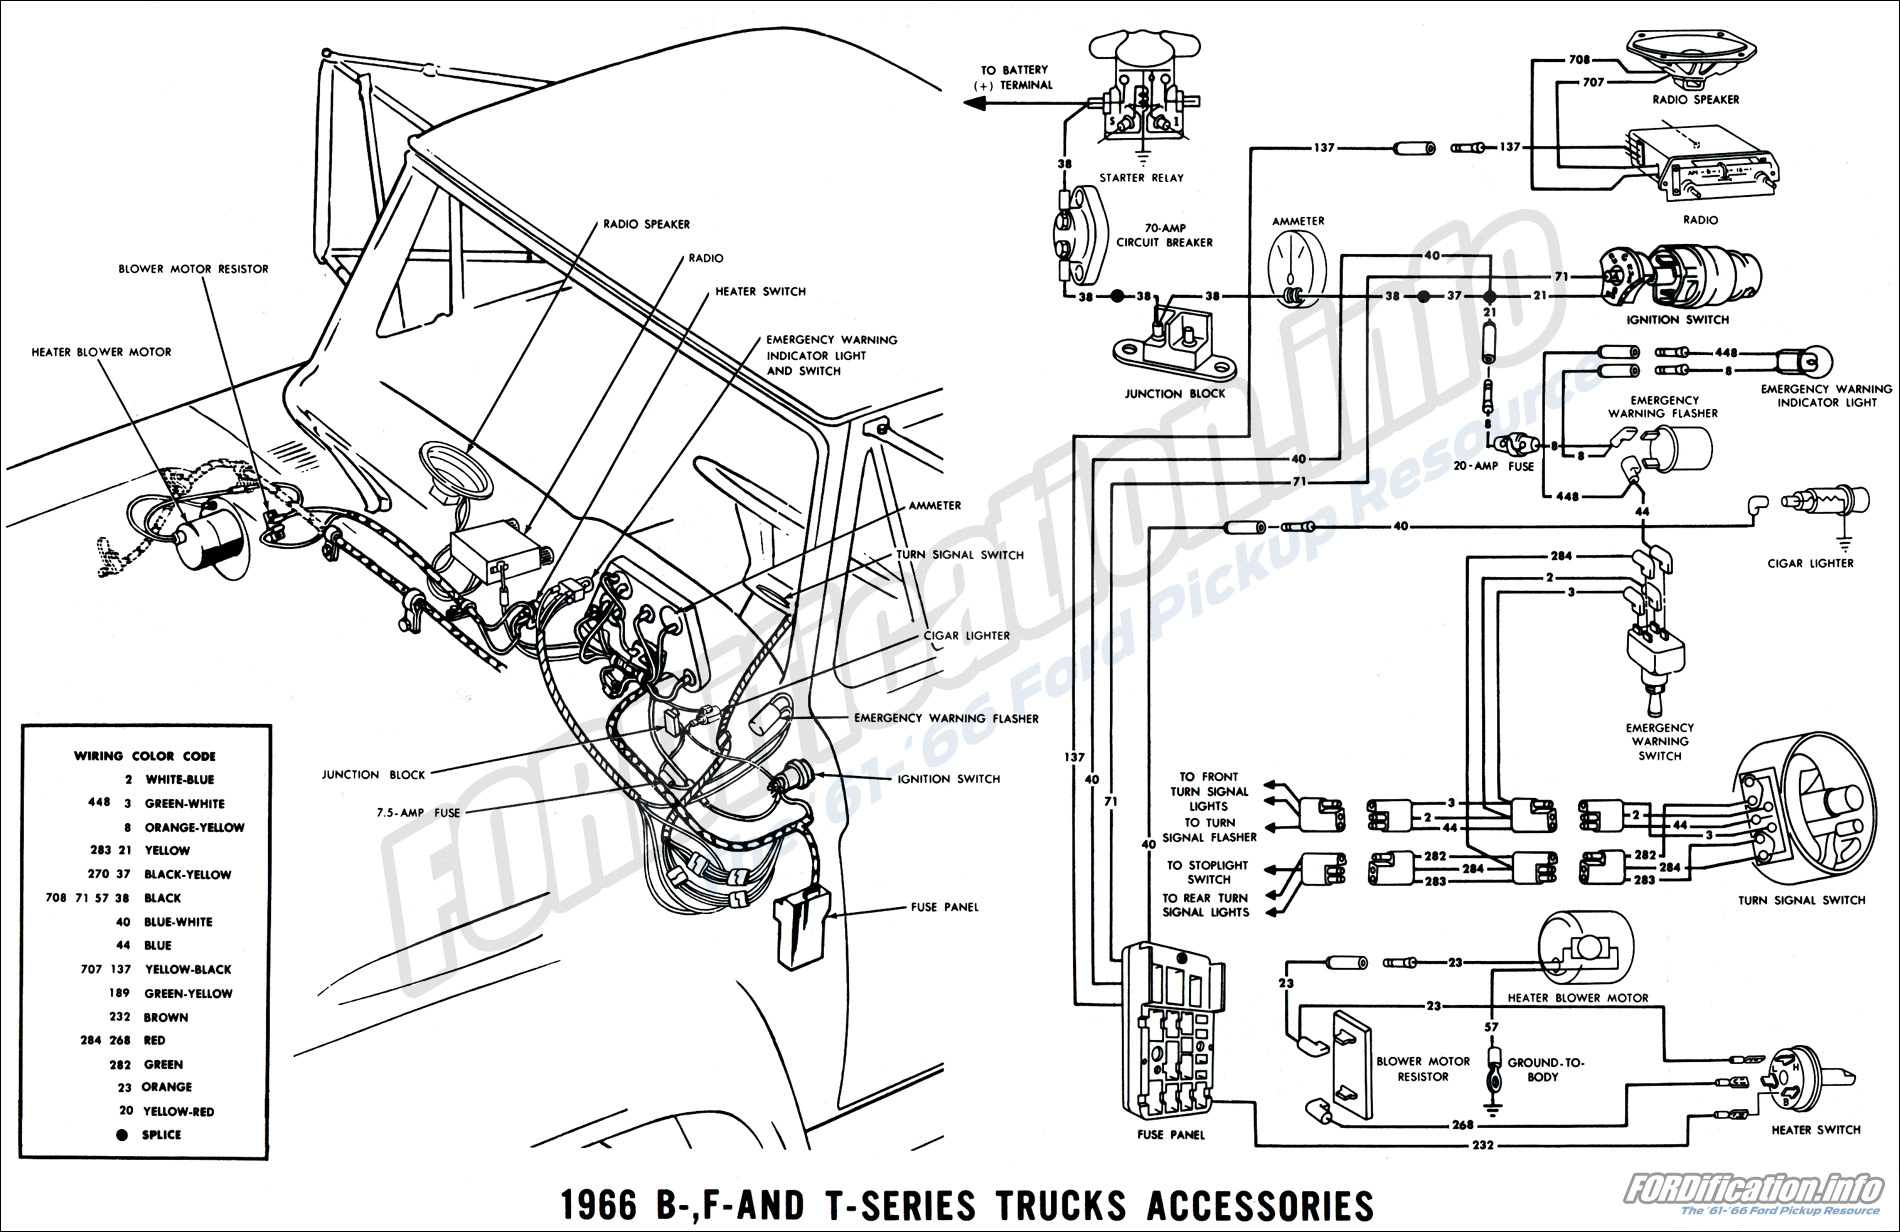 [SCHEMATICS_4LK]  1966 Ford Truck Wiring Diagrams - FORDification.info - The '61-'66 Ford  Pickup Resource | 1966 Ford F100 Engine Wiring Diagram Free Picture |  | FORDification.info